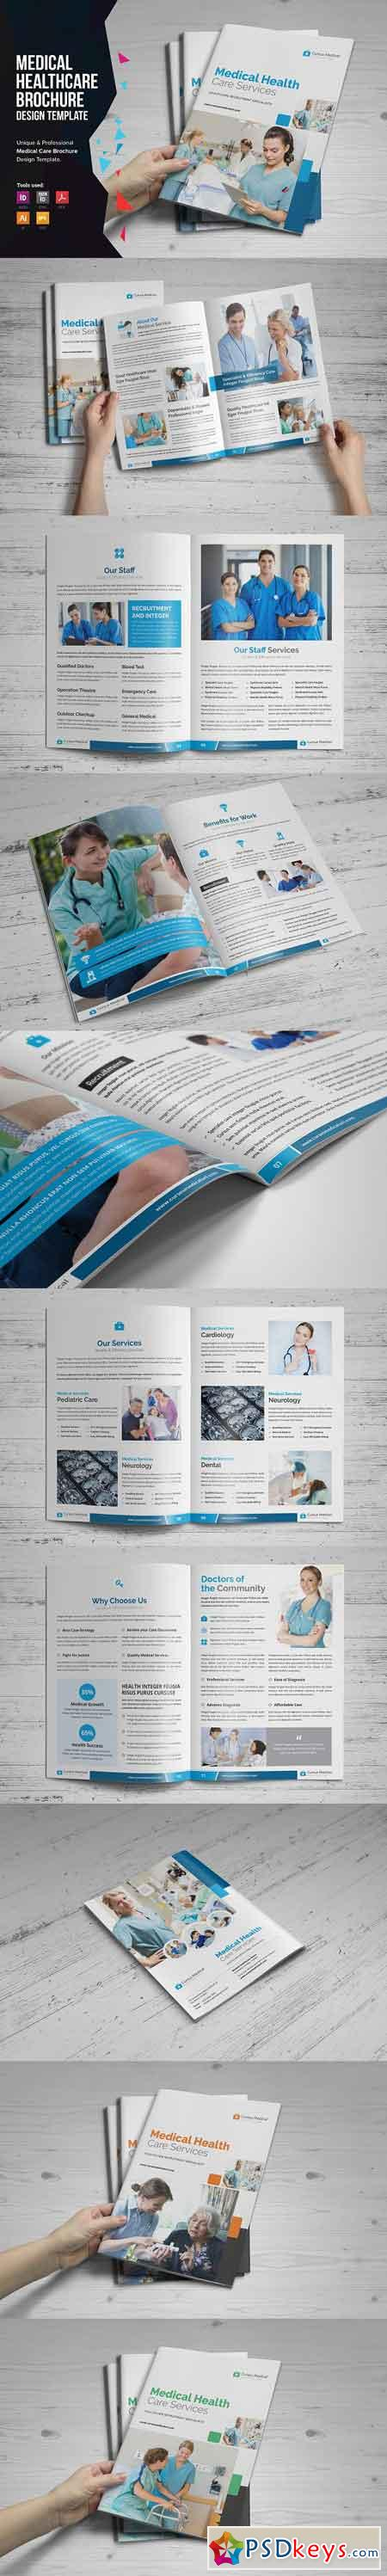 Medical HealthCare Brochure v4 3092729